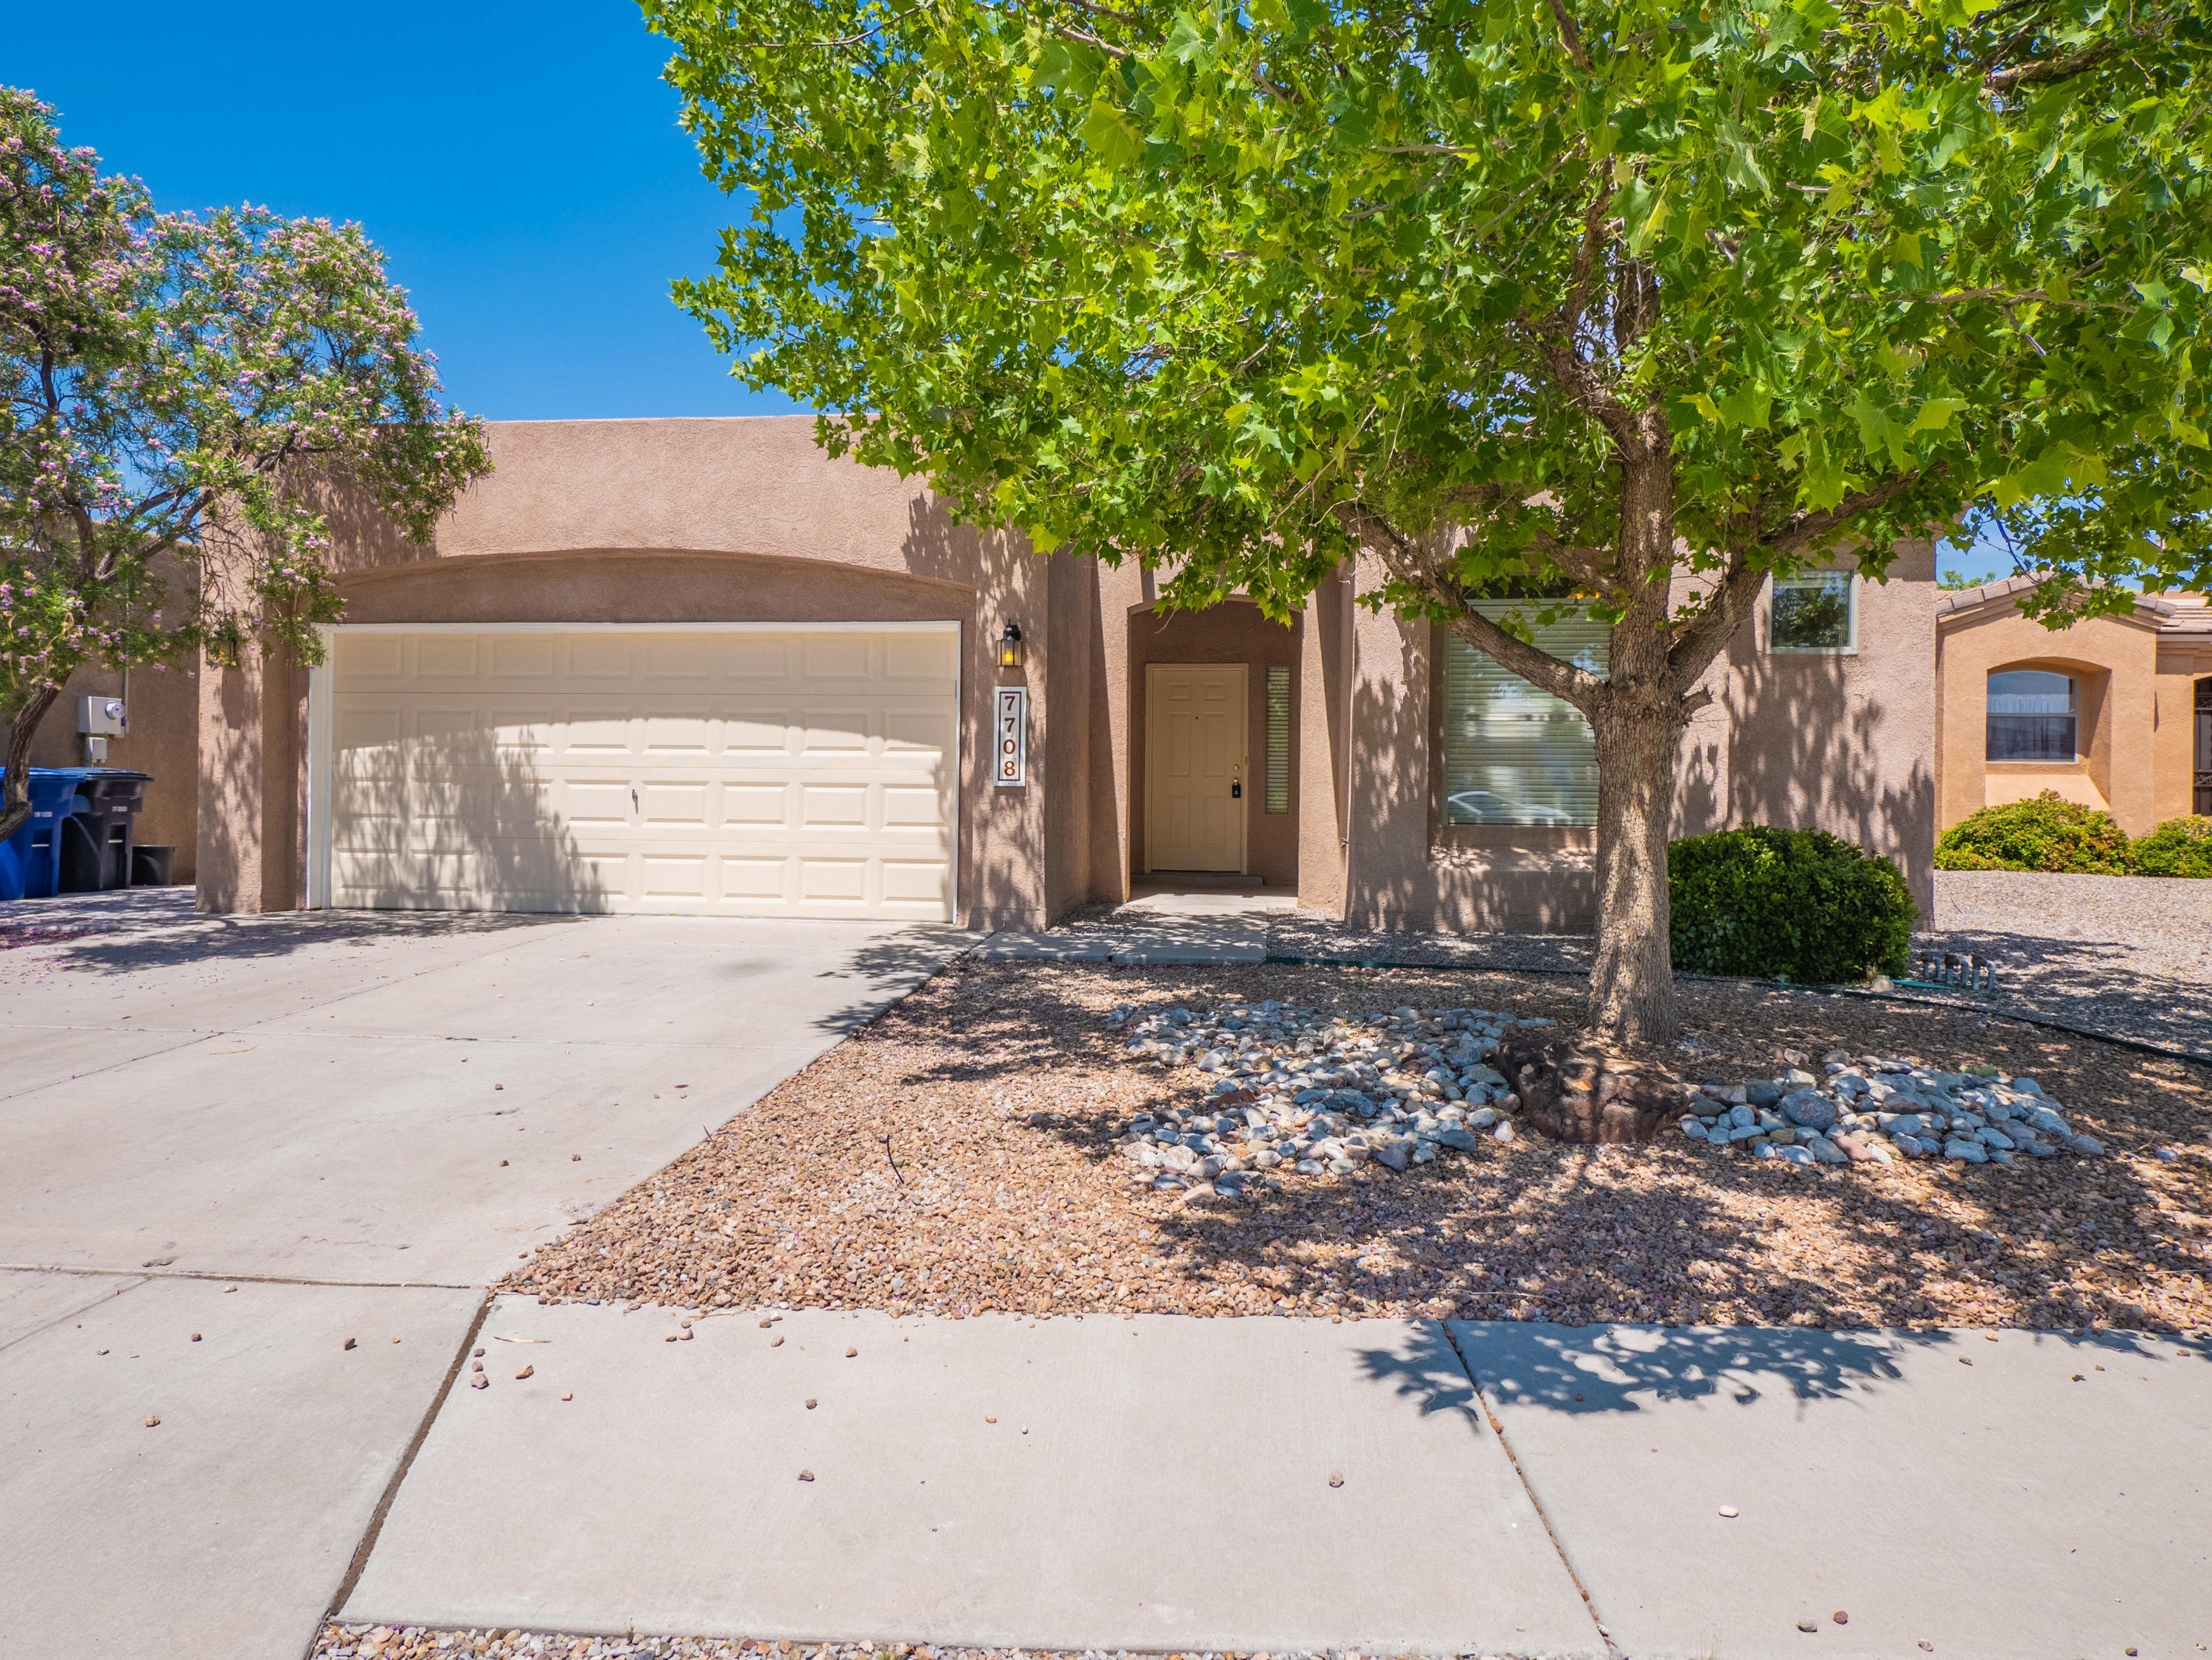 One of Vista Del Norte's finest homes is now for sale! This private and relaxing community is sure to please its new owner. Many walking trails and parks for everyone to enjoy. Updated appliances and carpet plus many items improved for the sale. Large backyard is great for gatherings and a play area. Very low inventory in this area so call us before its gone!